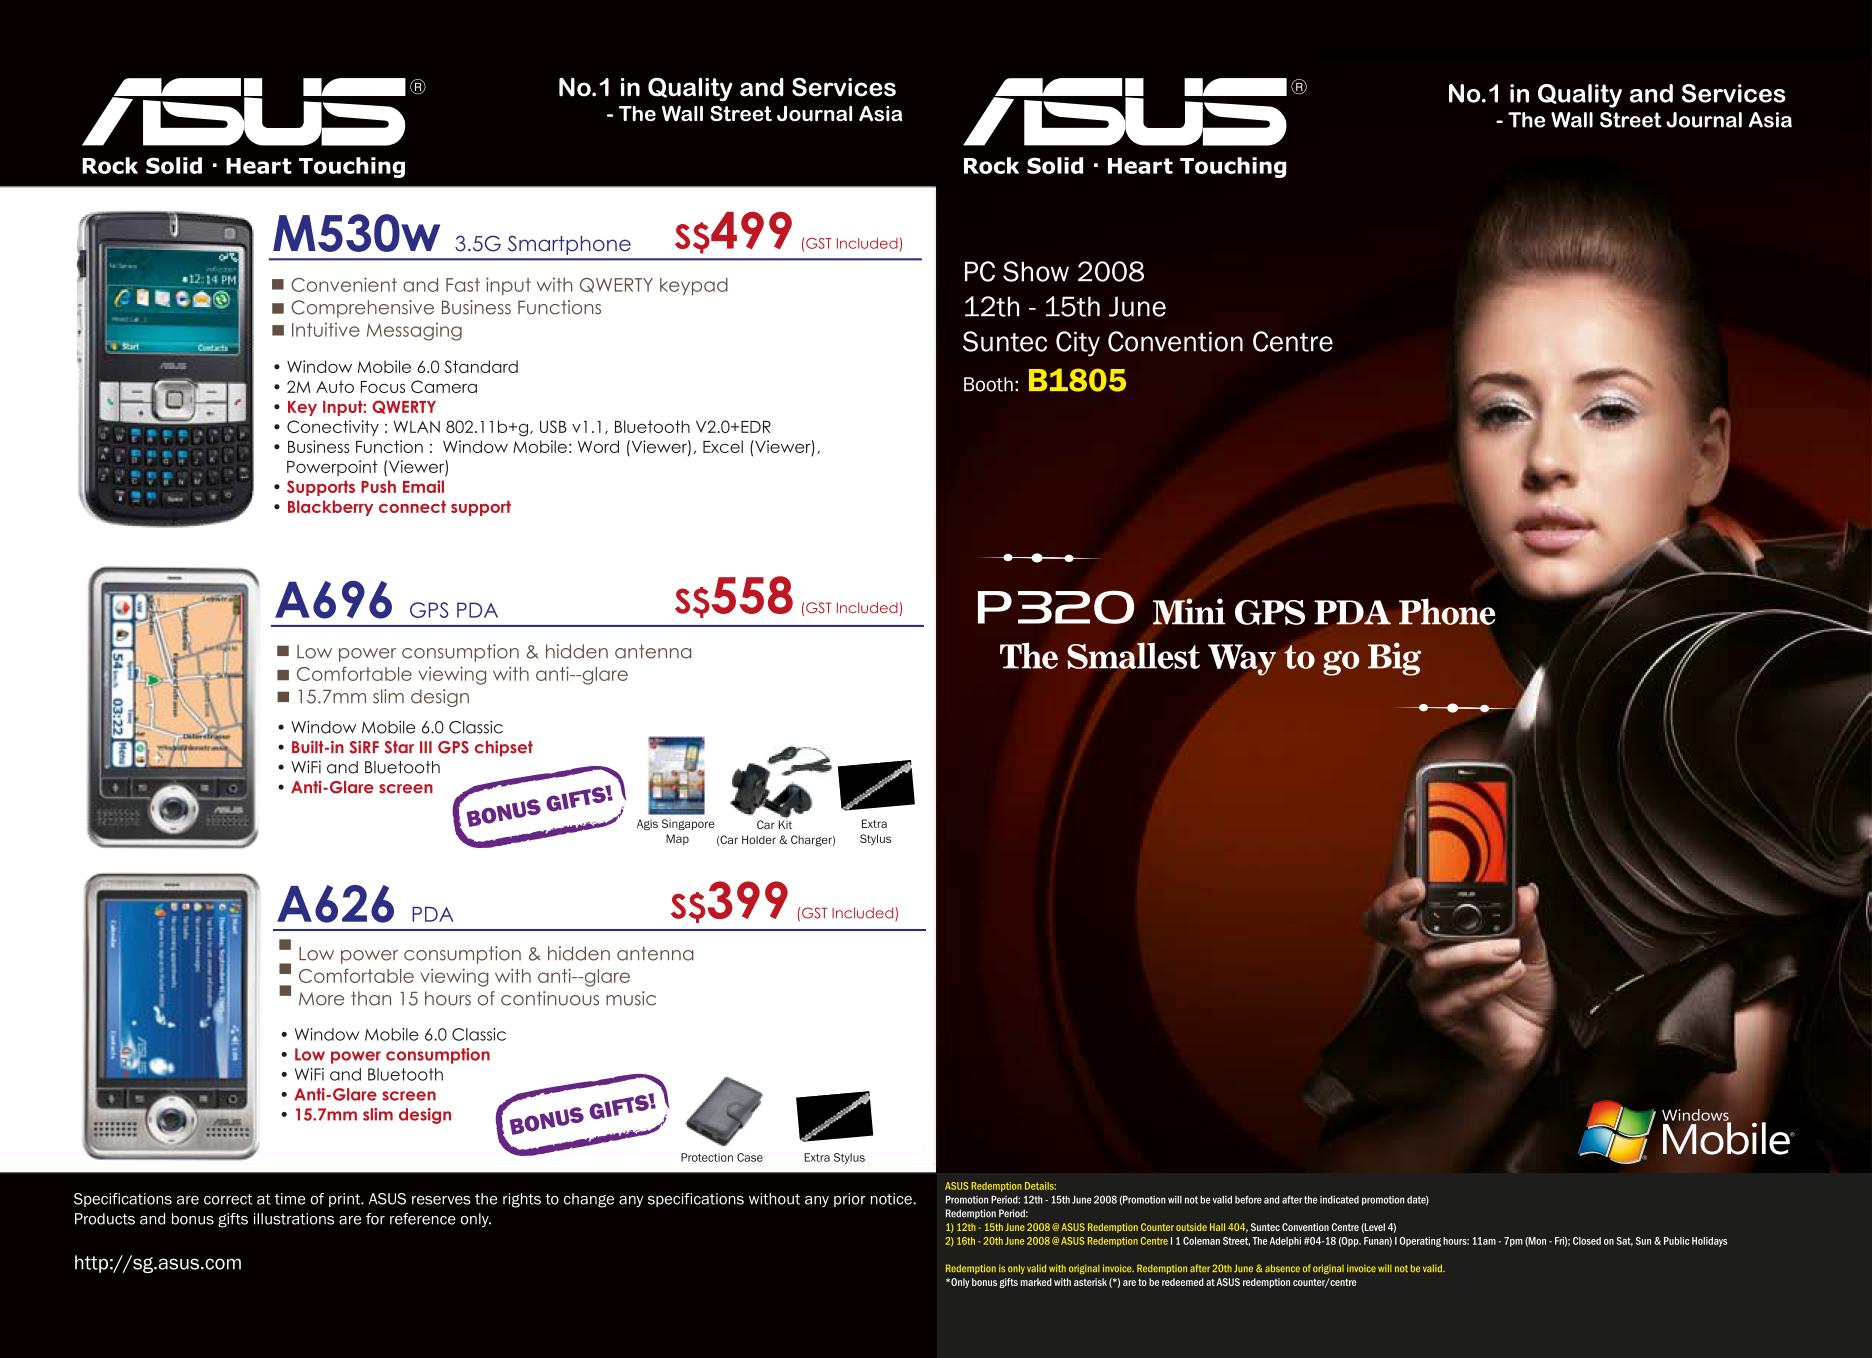 PC Show 2008 price list image brochure of Asus Pda Phone Front.pdf 01